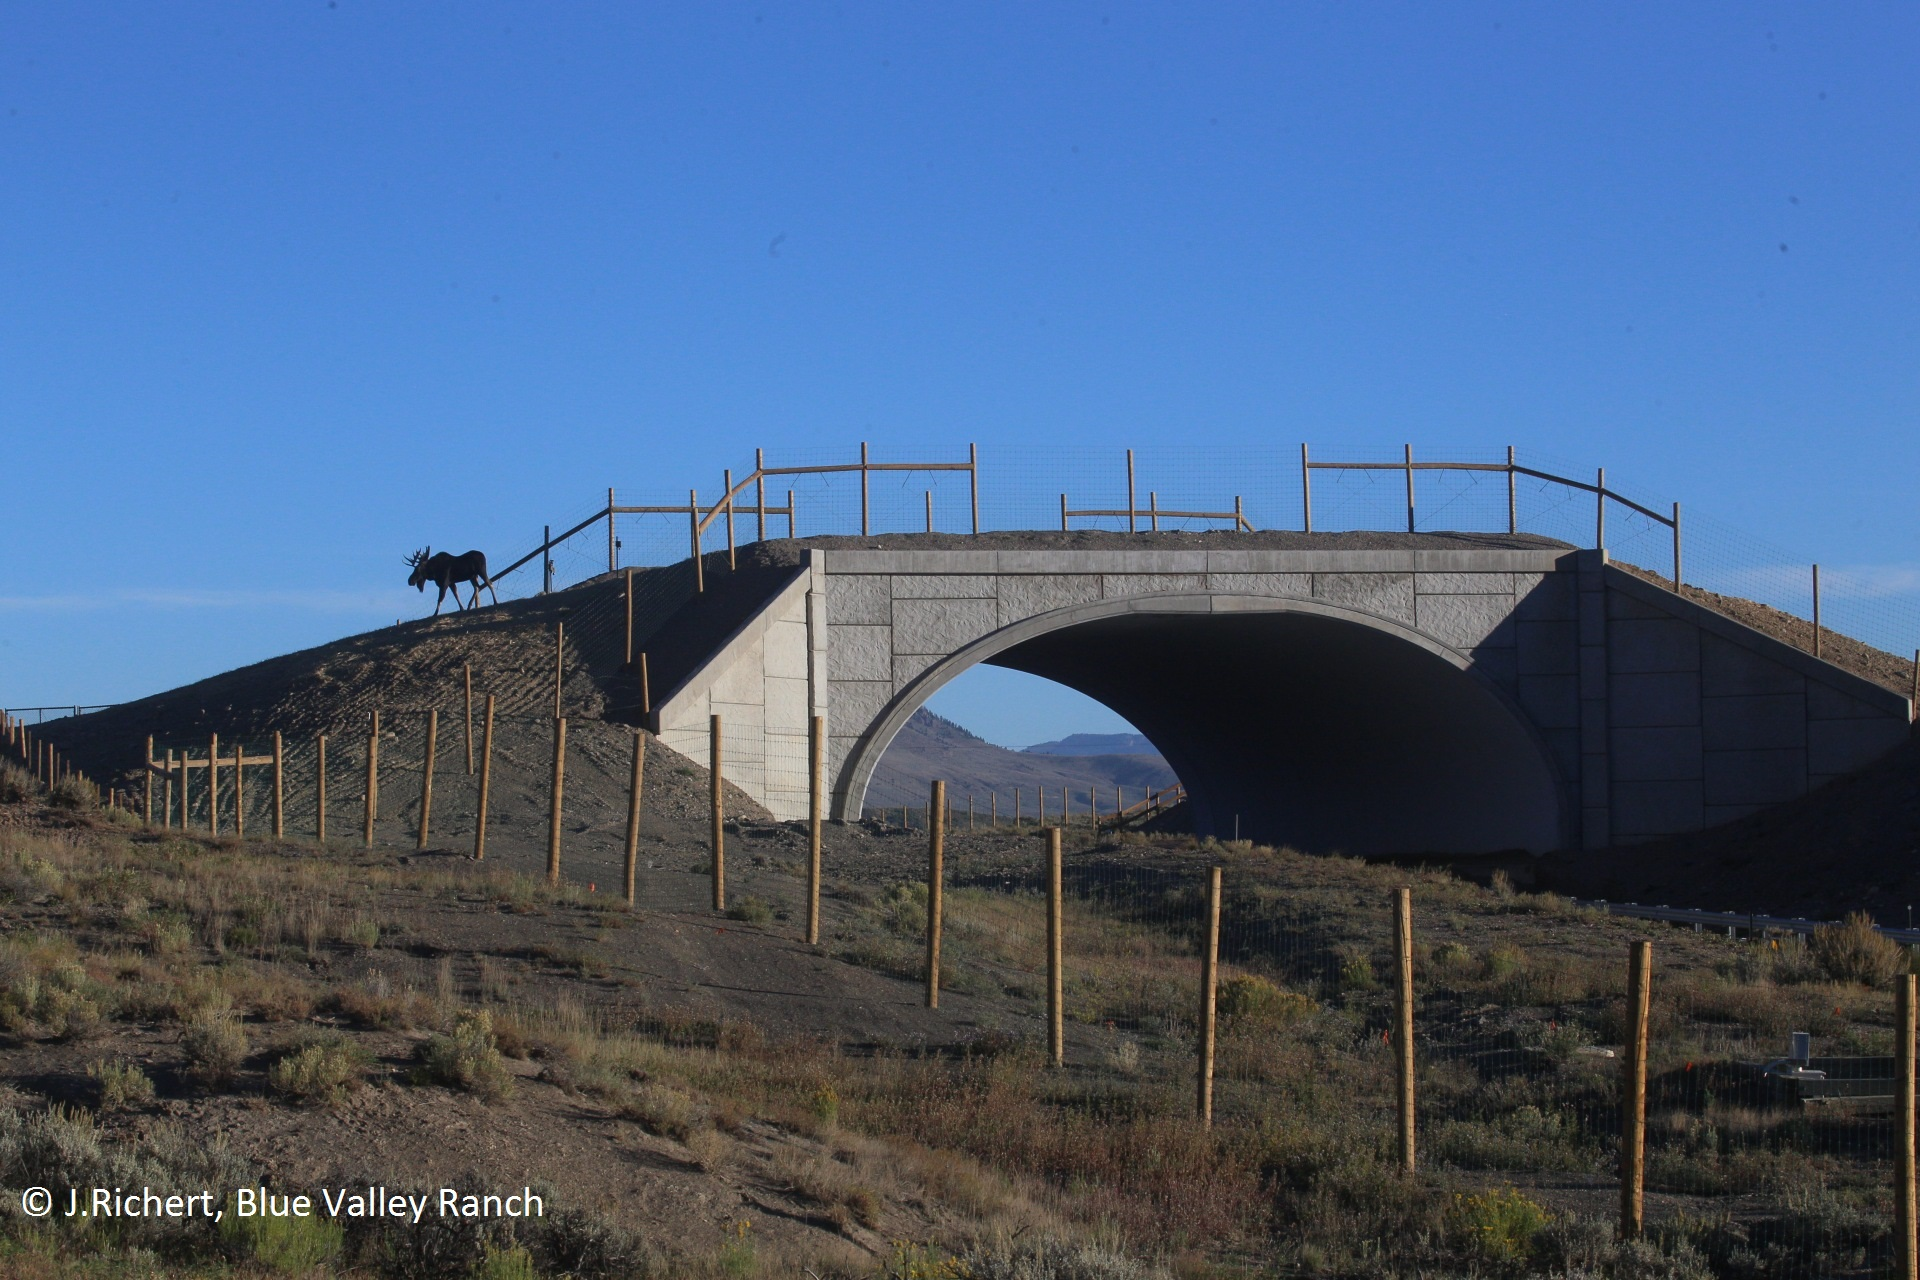 CO 9 moose crossing overpass